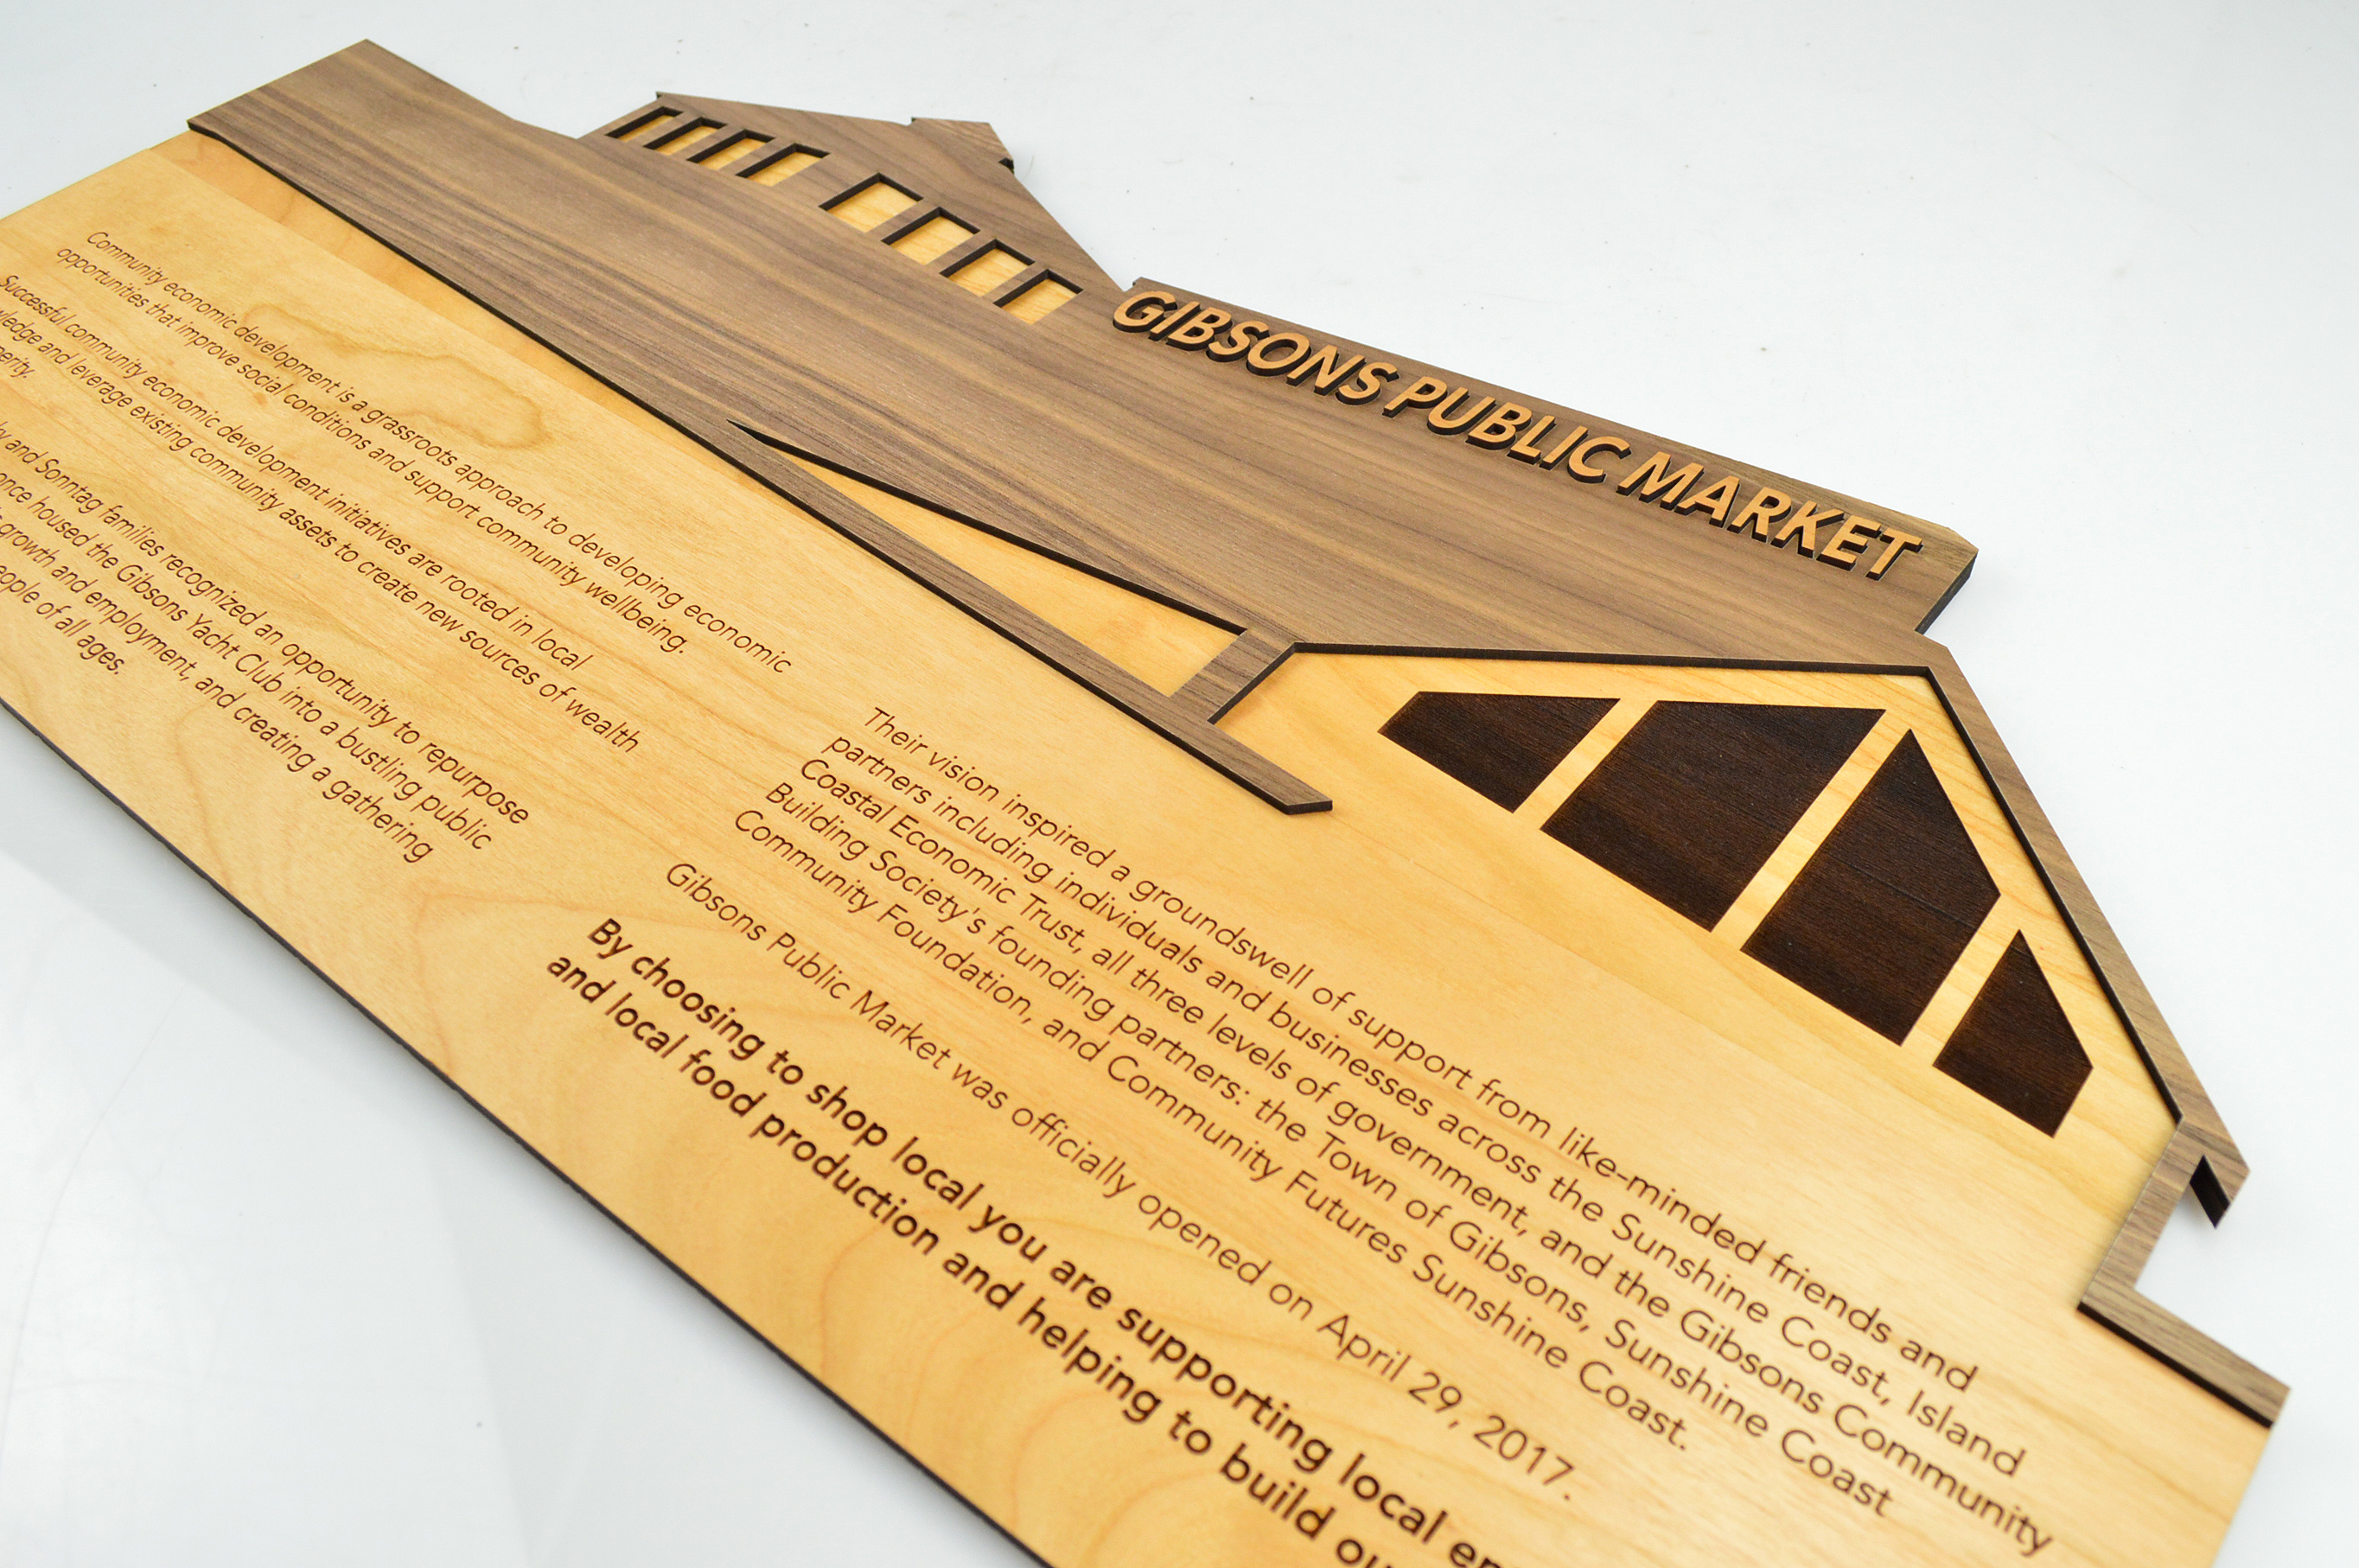 custom-award_sustainable_laser-engraved_sunwood_custom-sign_eco-friendly_nonprofit_wall-plaque_british-columbia